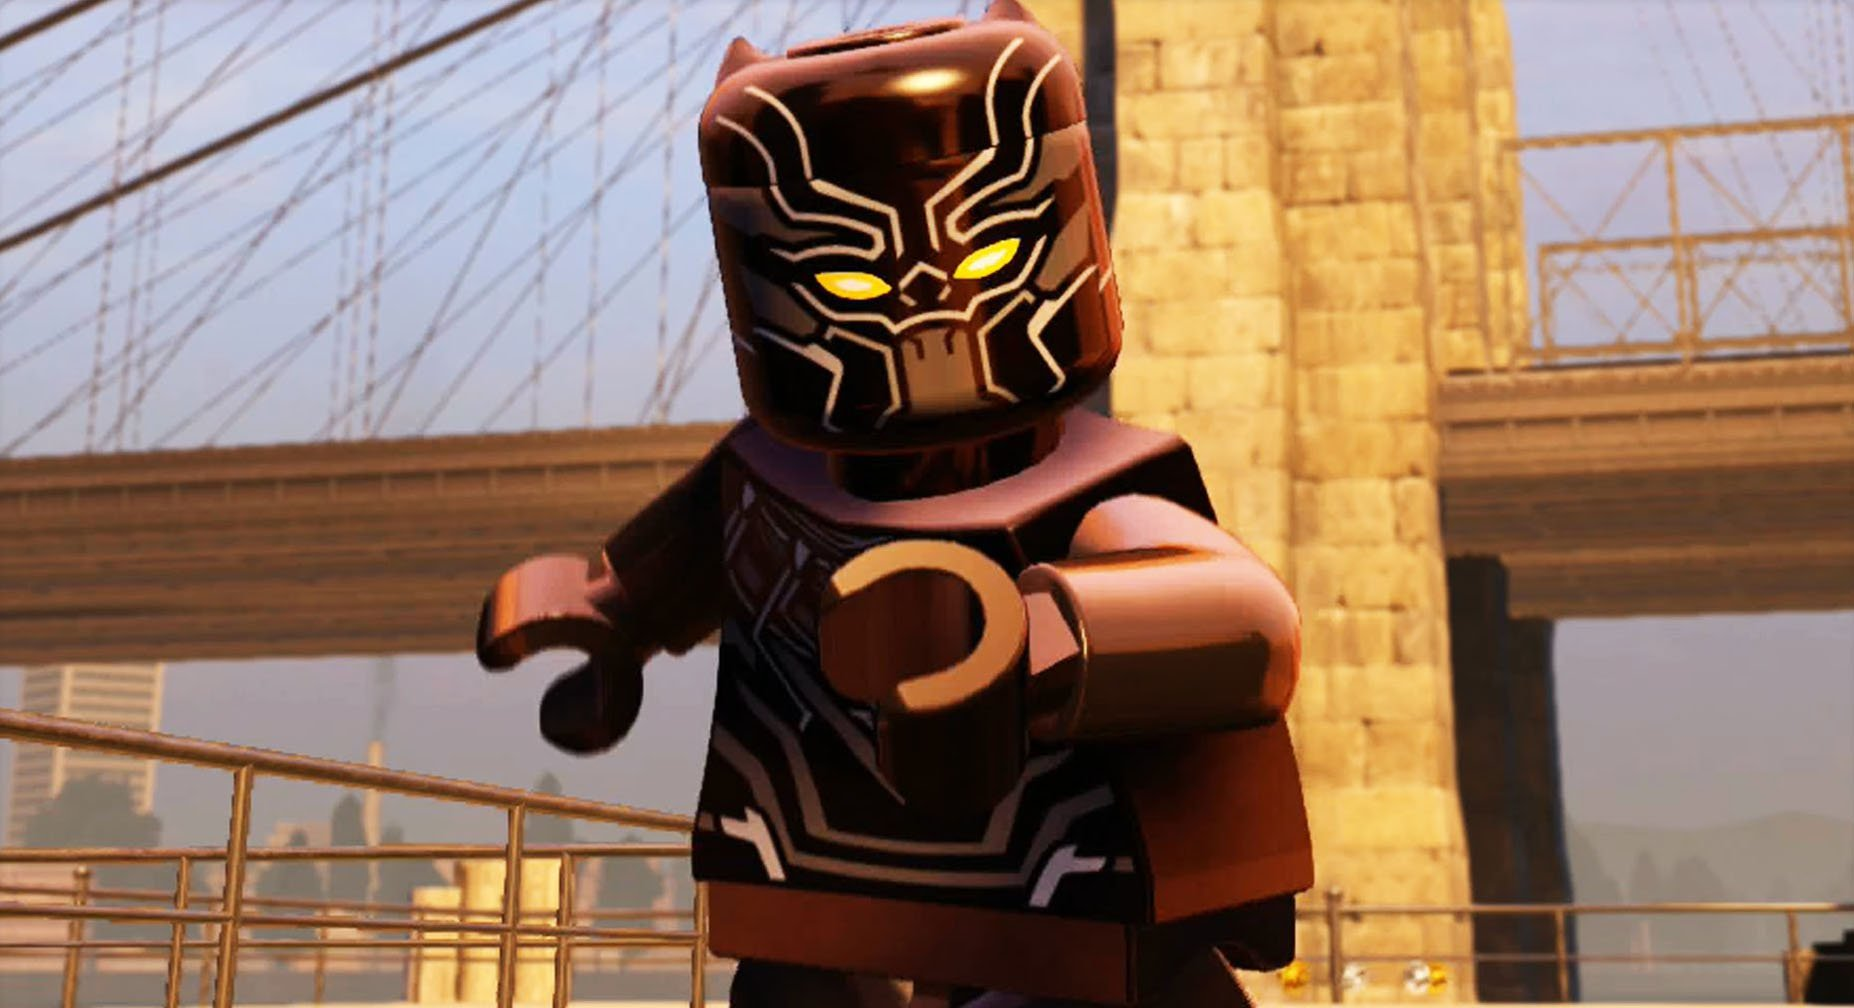 Black Panther Trouble In Wakanda Is The New Black Panther